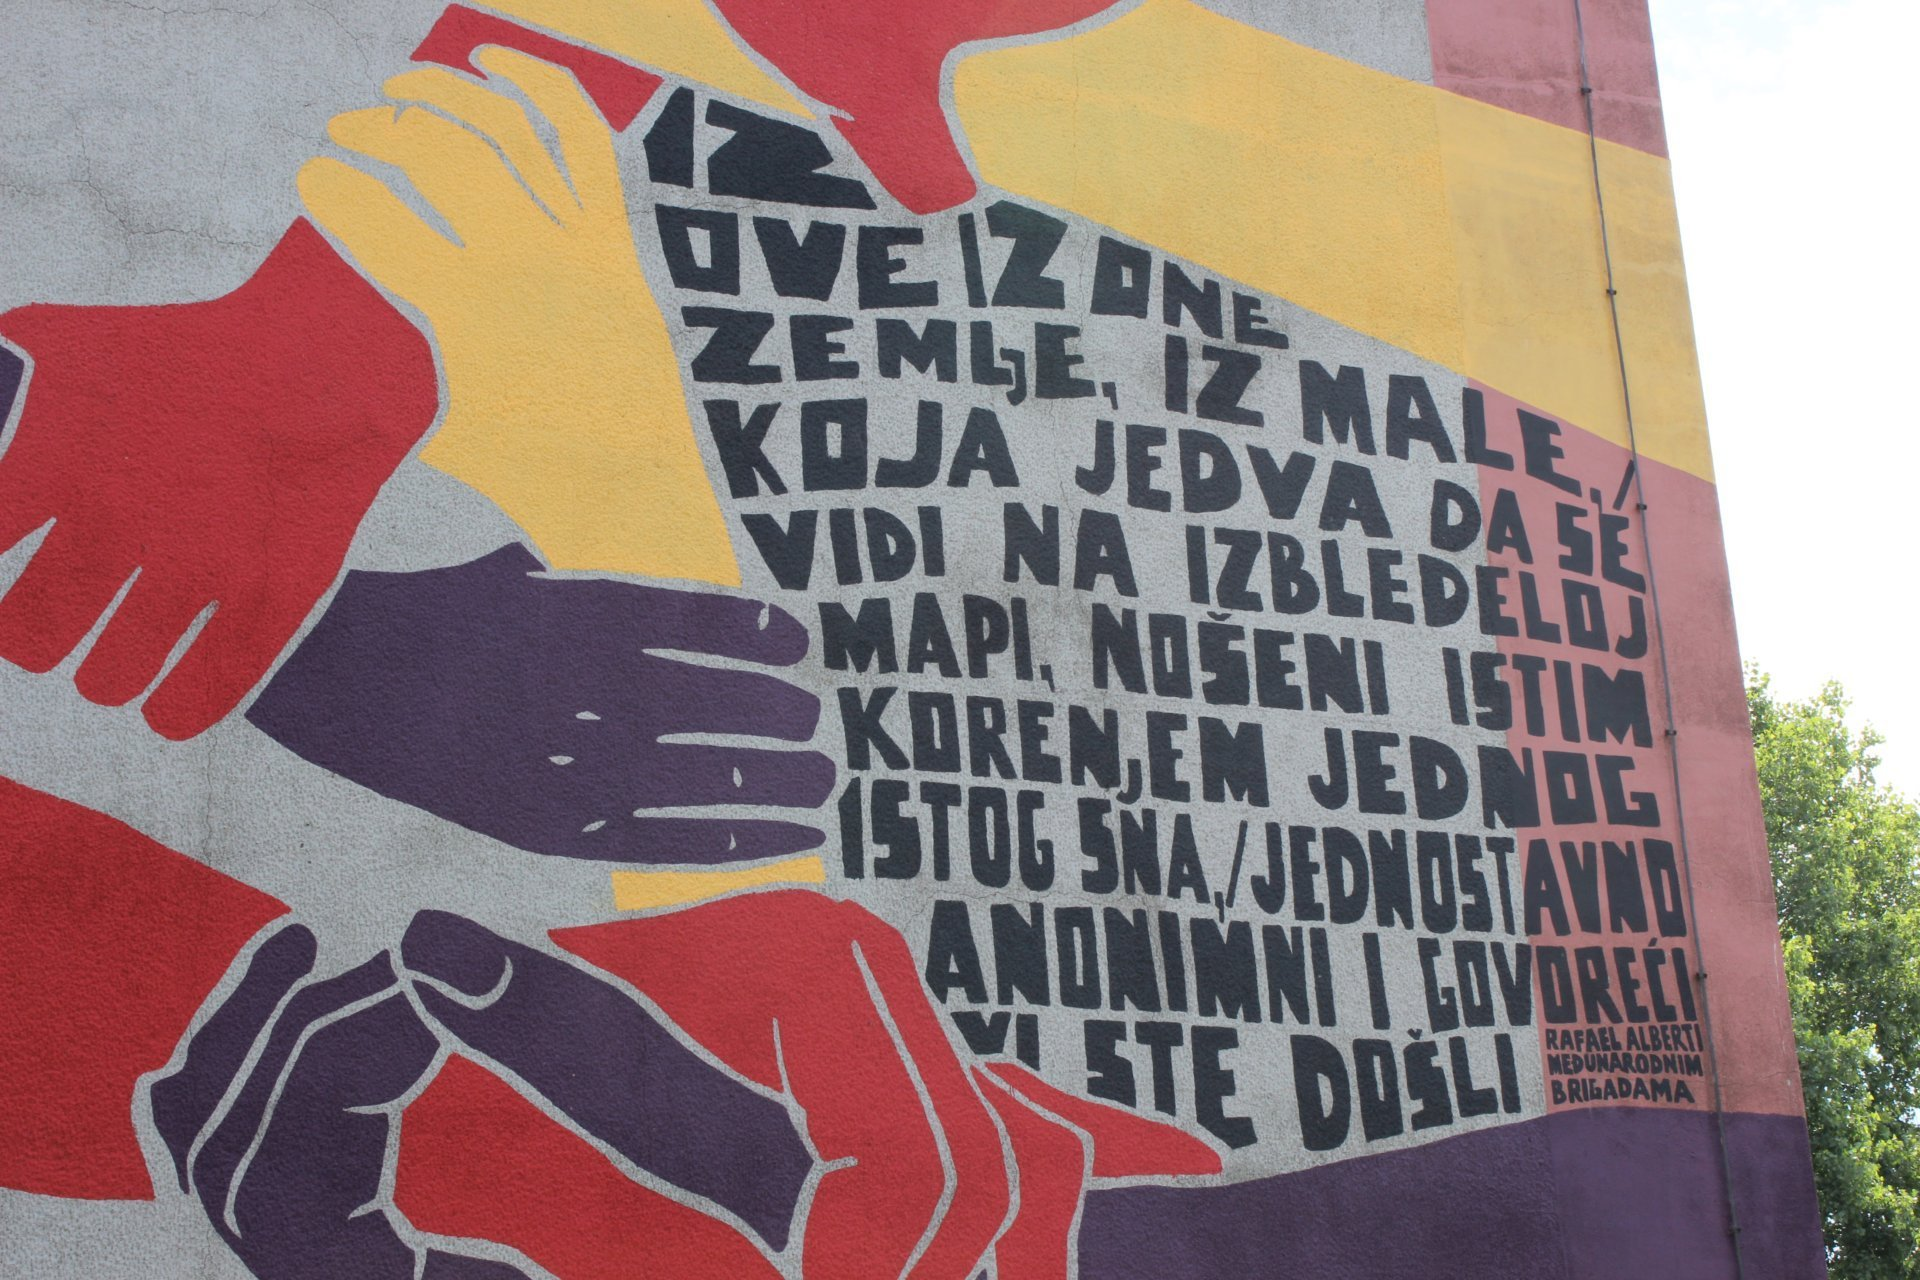 Solidarity – To The International Brigades